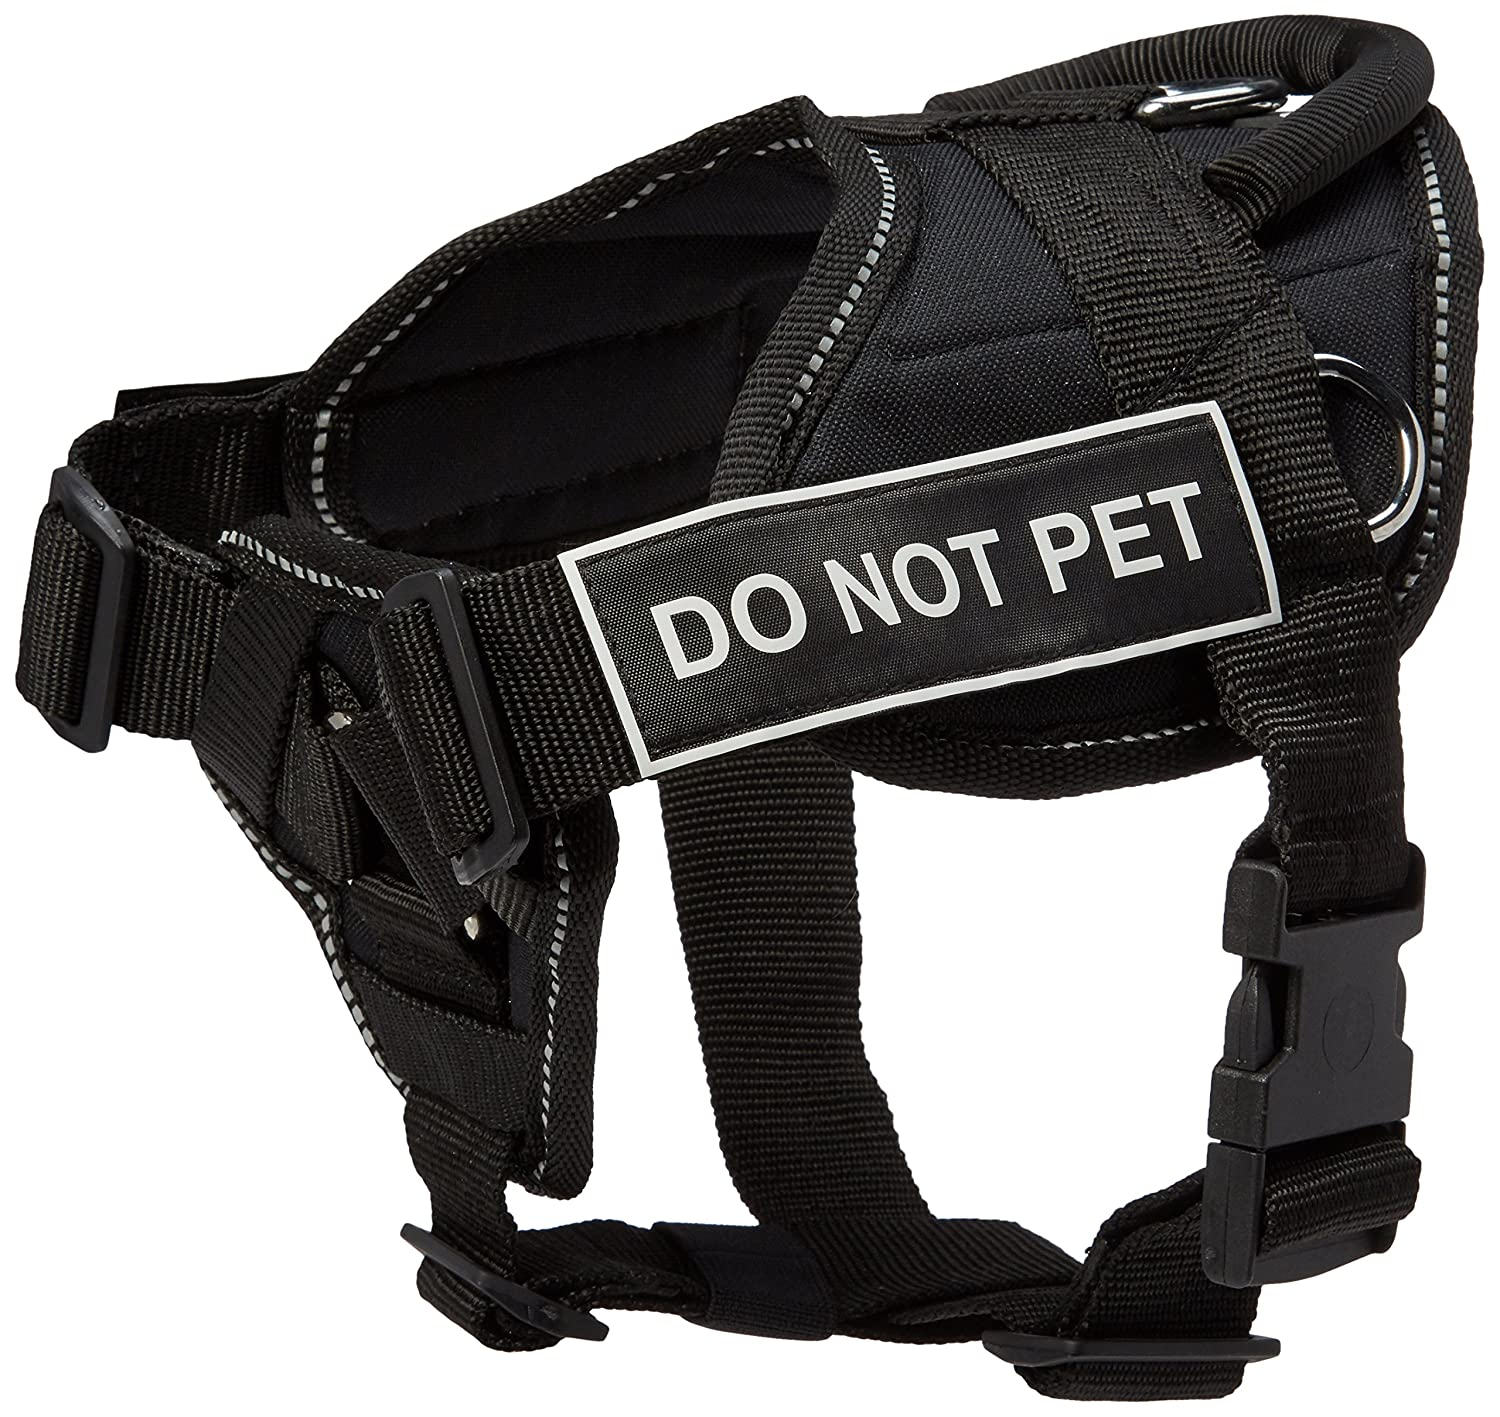 Dean & Tyler Black with Reflective Trim Fun Dog Harness with Padded Chest Piece, Do Not Pet, Small, Fits Girth Size 22-Inch to 27-Inch